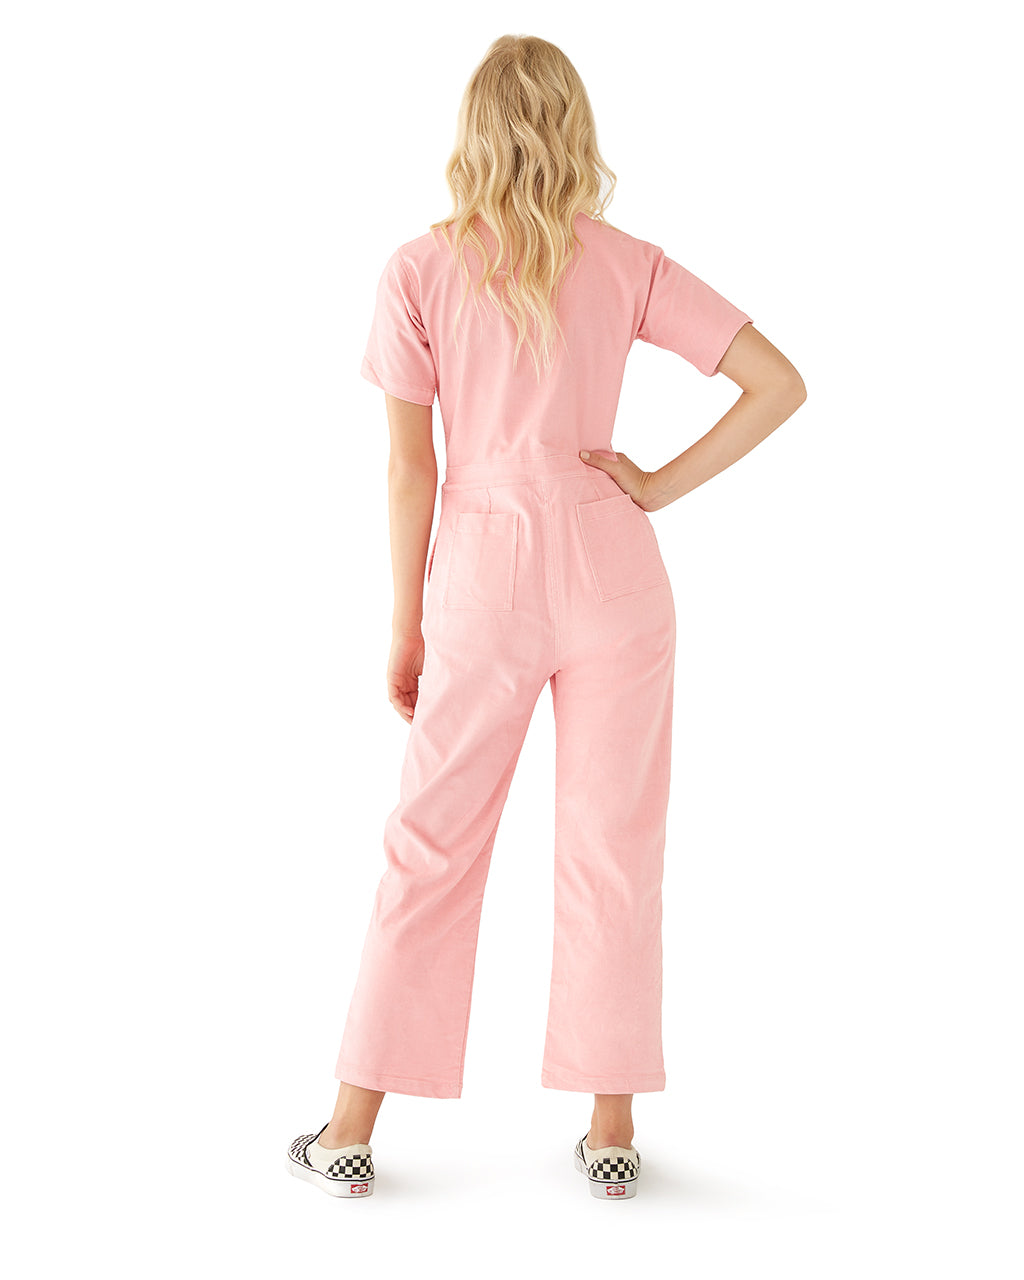 4e65c2eb802e Corduroy Coveralls by nooworks - jumpsuit - ban.do